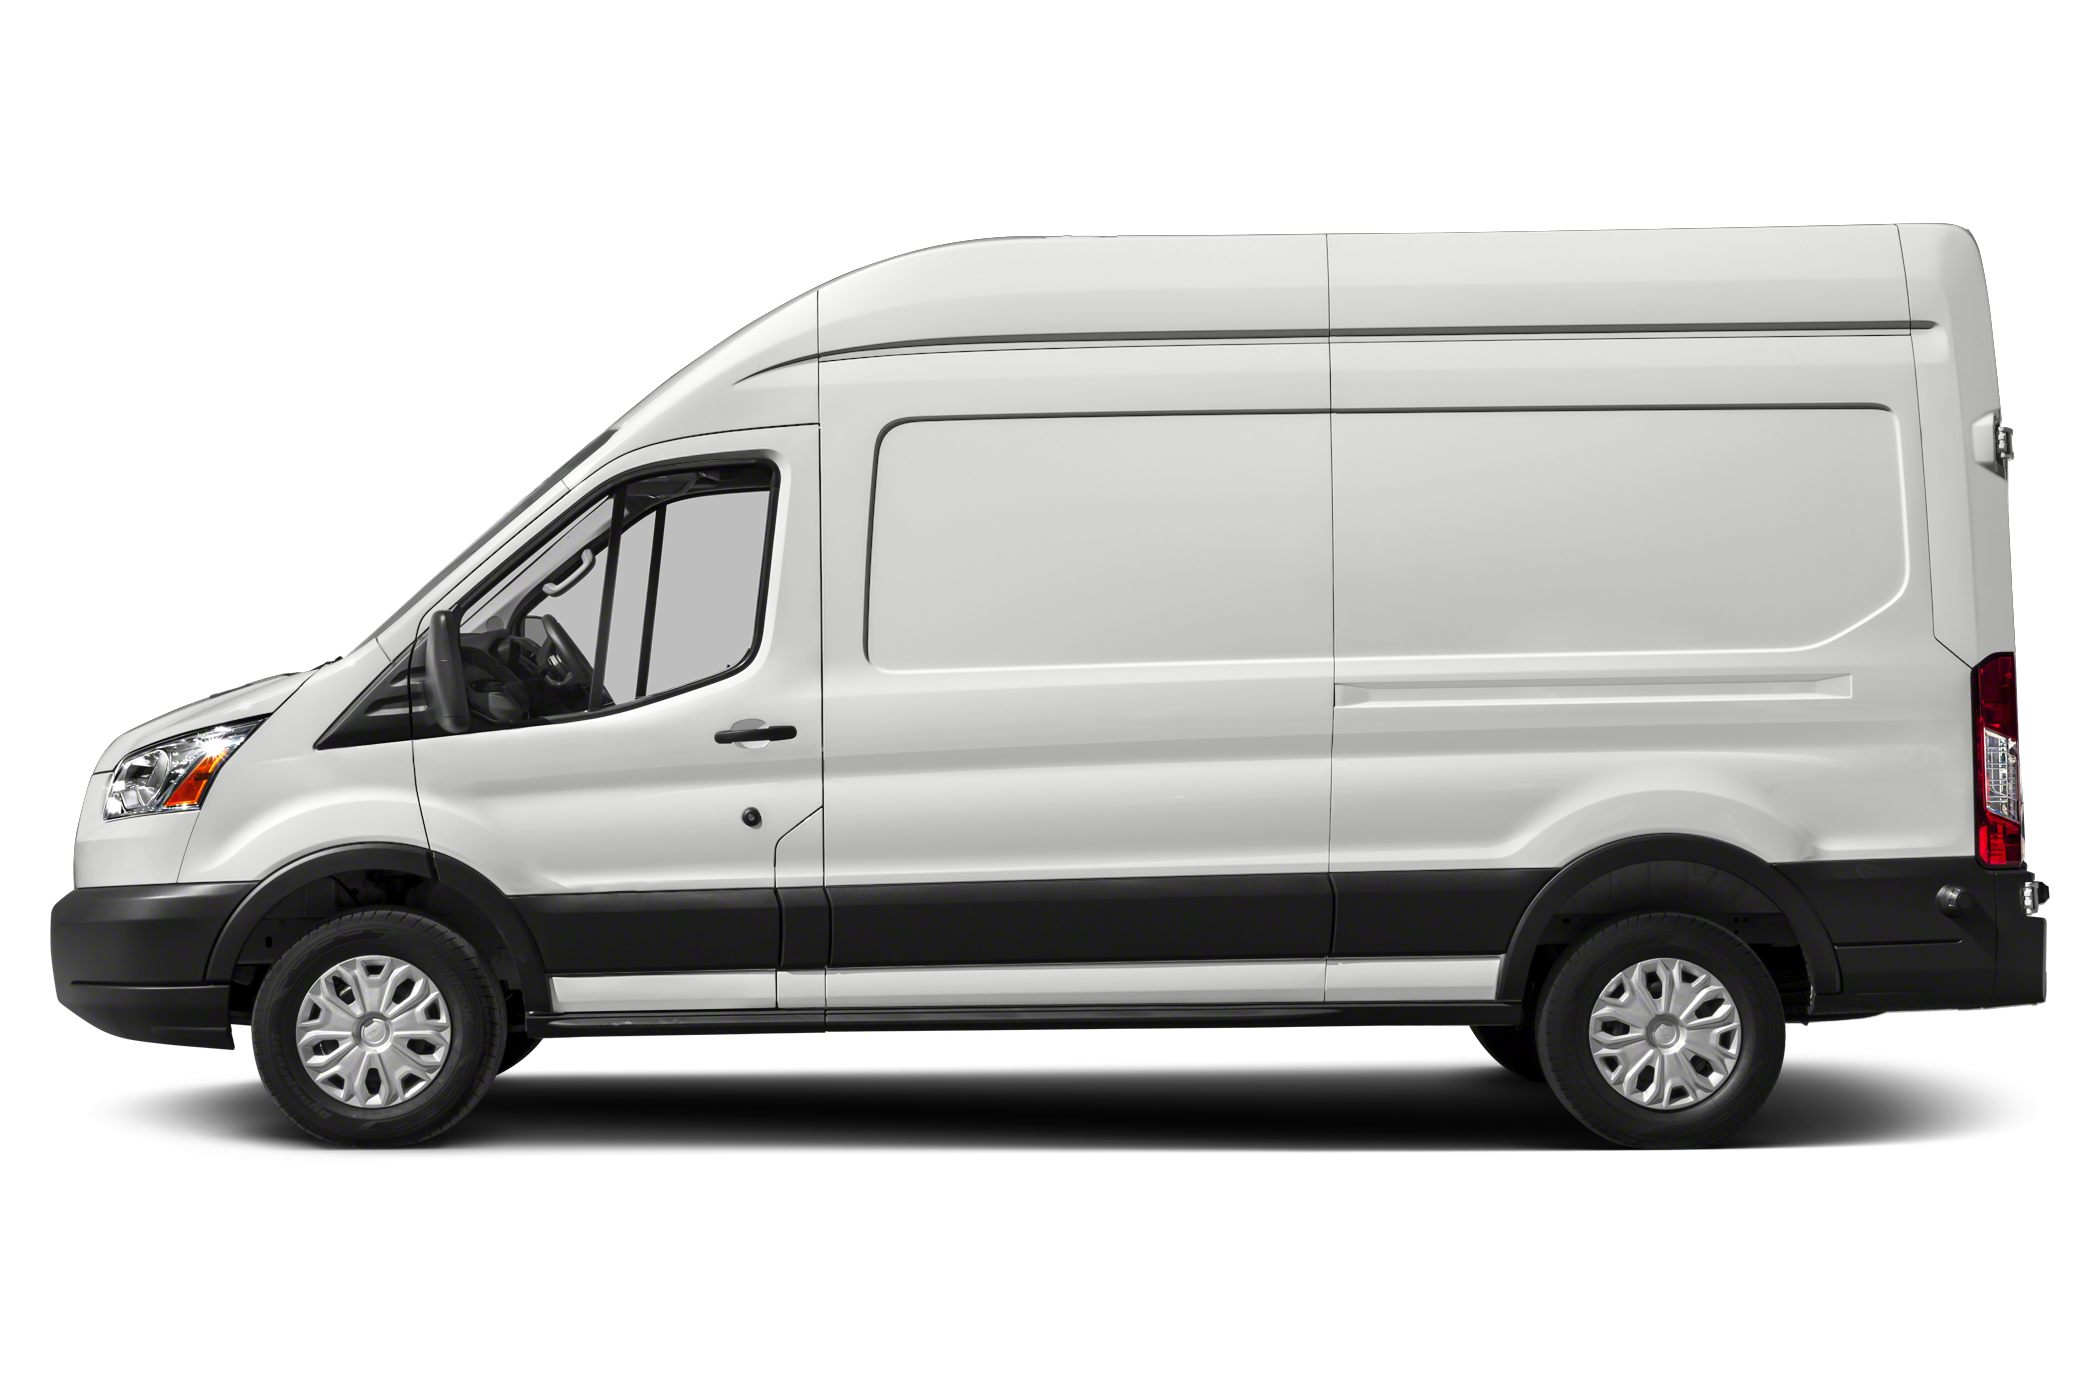 Ford Passenger Van >> 2016 Ford Transit-250 Reviews, Specs and Prices | Cars.com